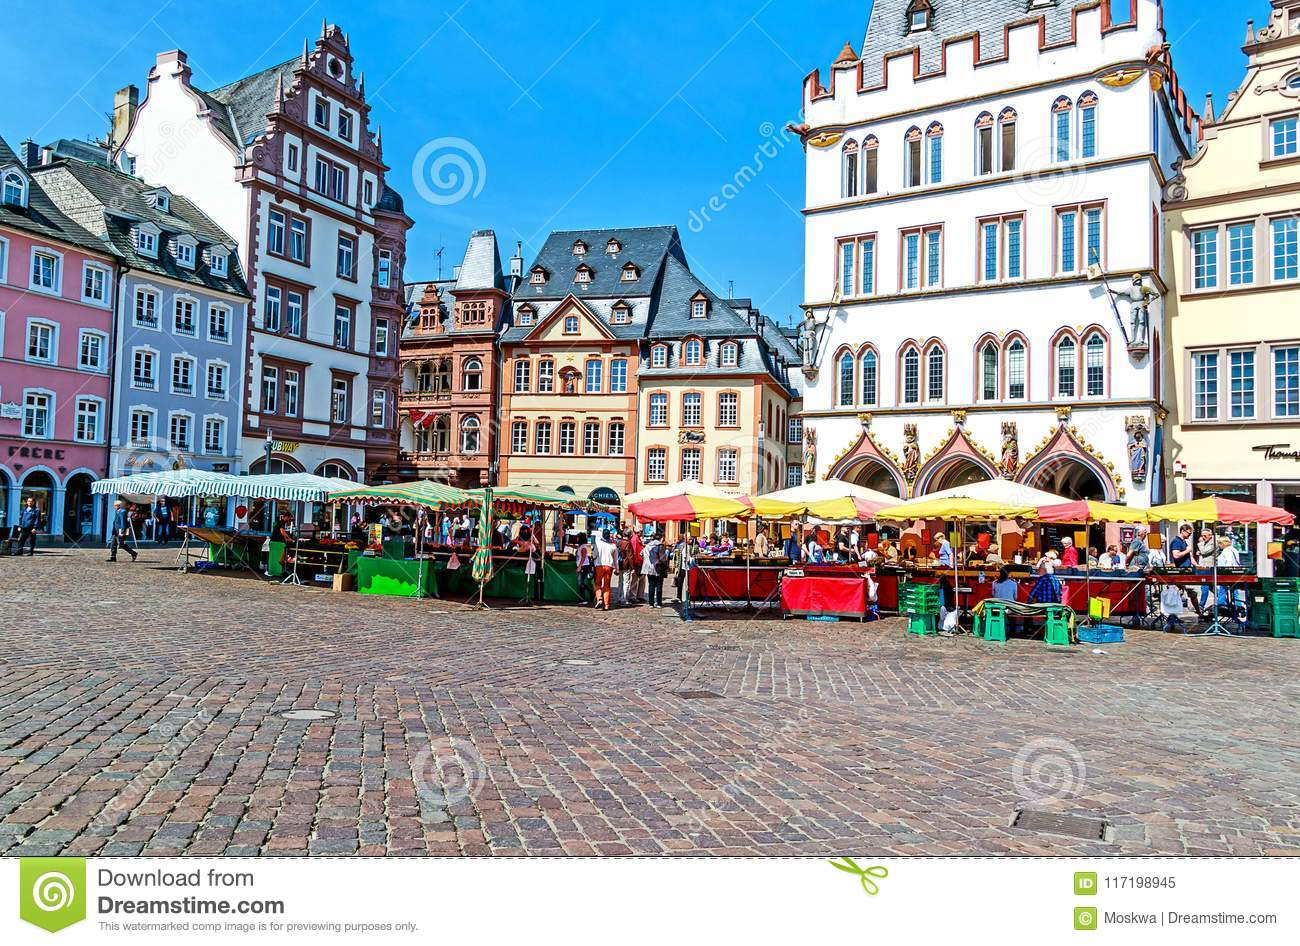 Picturesque Main Market In Trier The Oldest German City Germany Editorial Image Image Of German Building 117198945